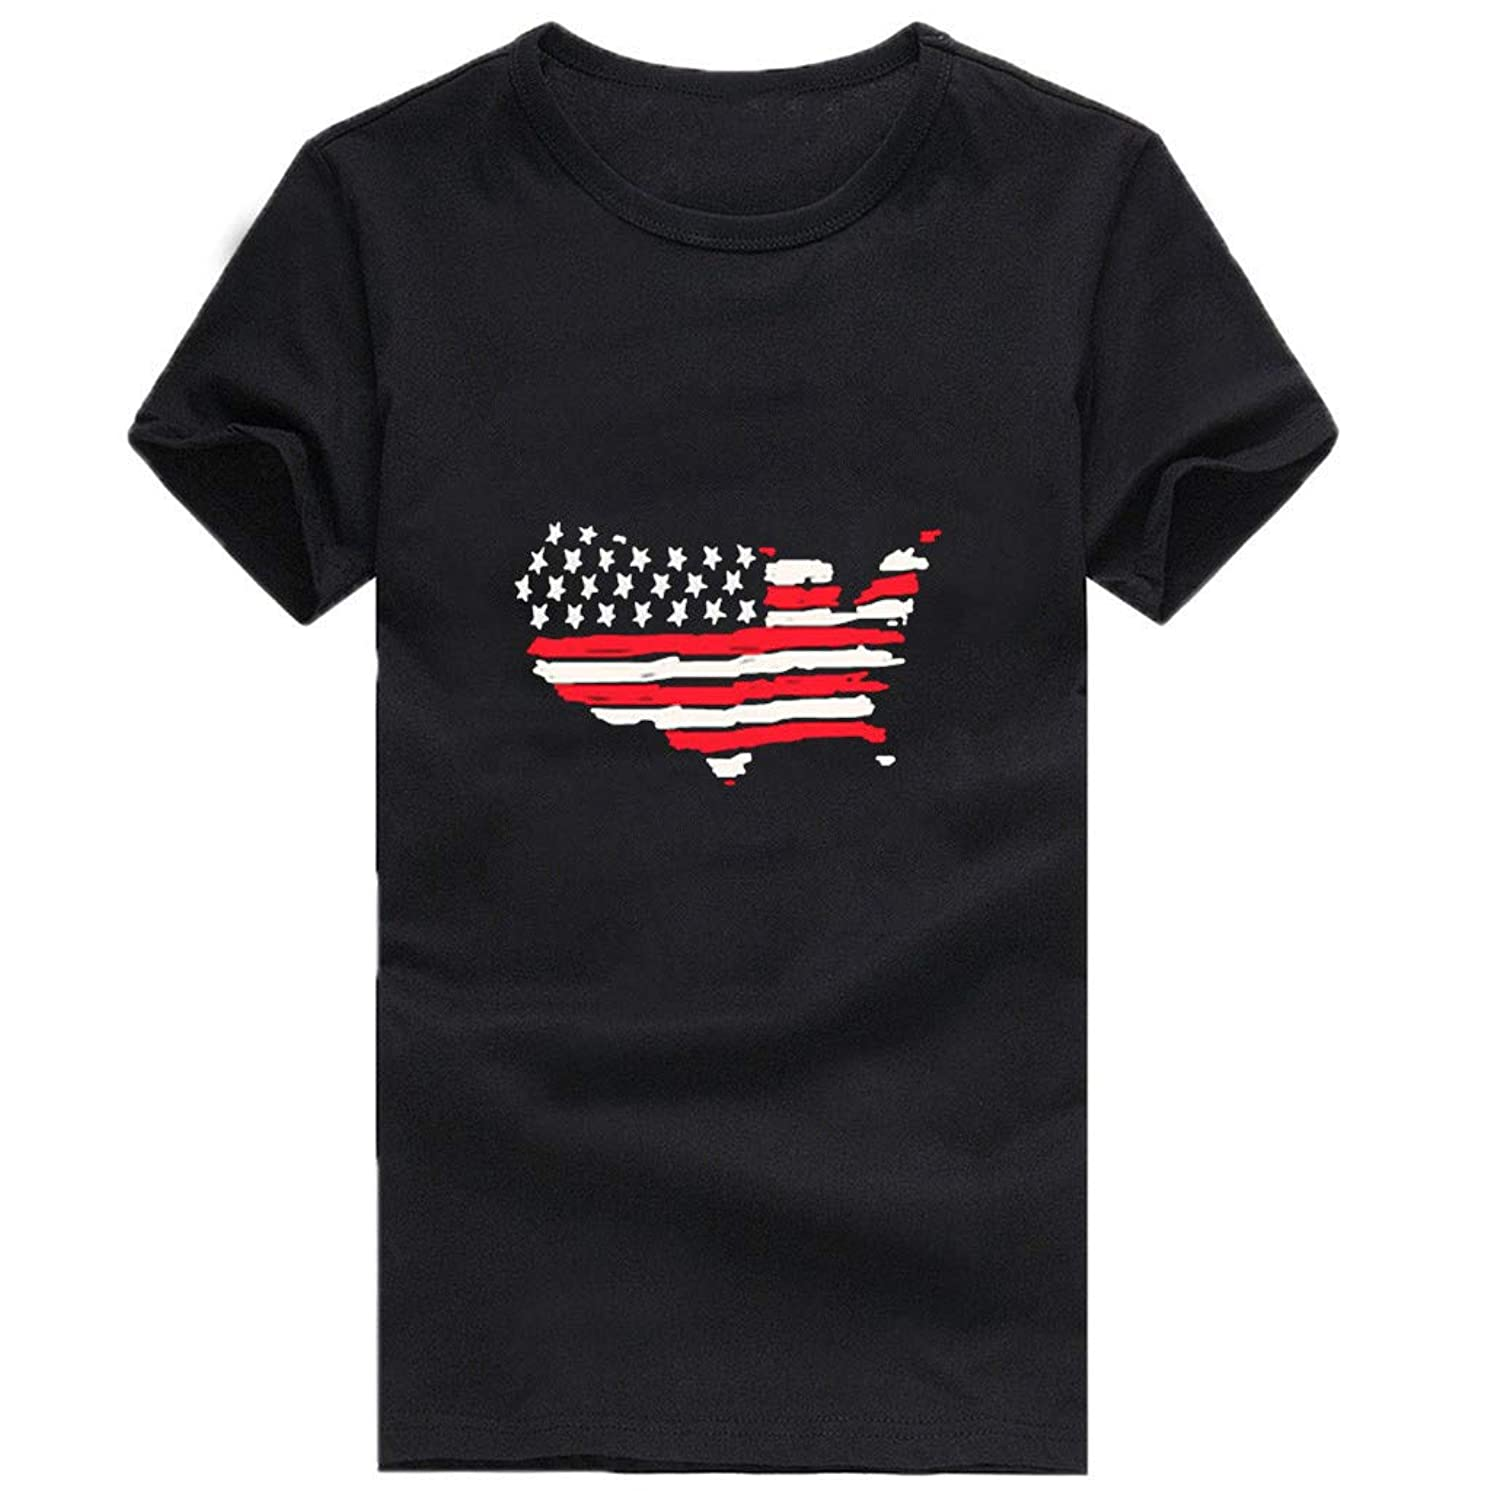 Respctful? Women Summer American Flag Top Short Sleeve Round Neck Blouse Casual Loose Tops T-Shirt